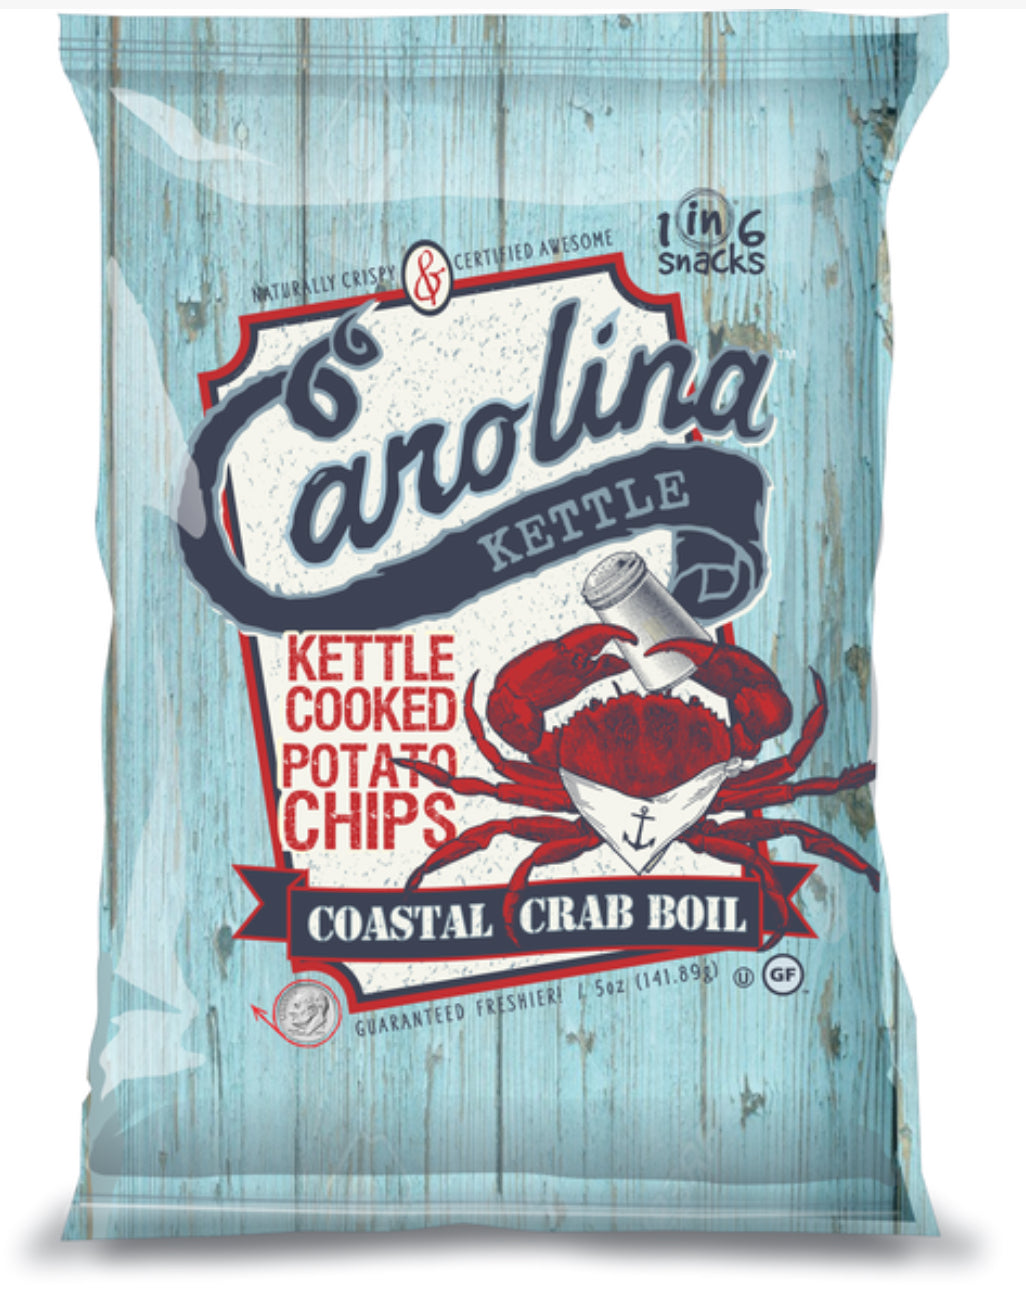 Coastal Crab Boil Kettle Chips 5oz bag